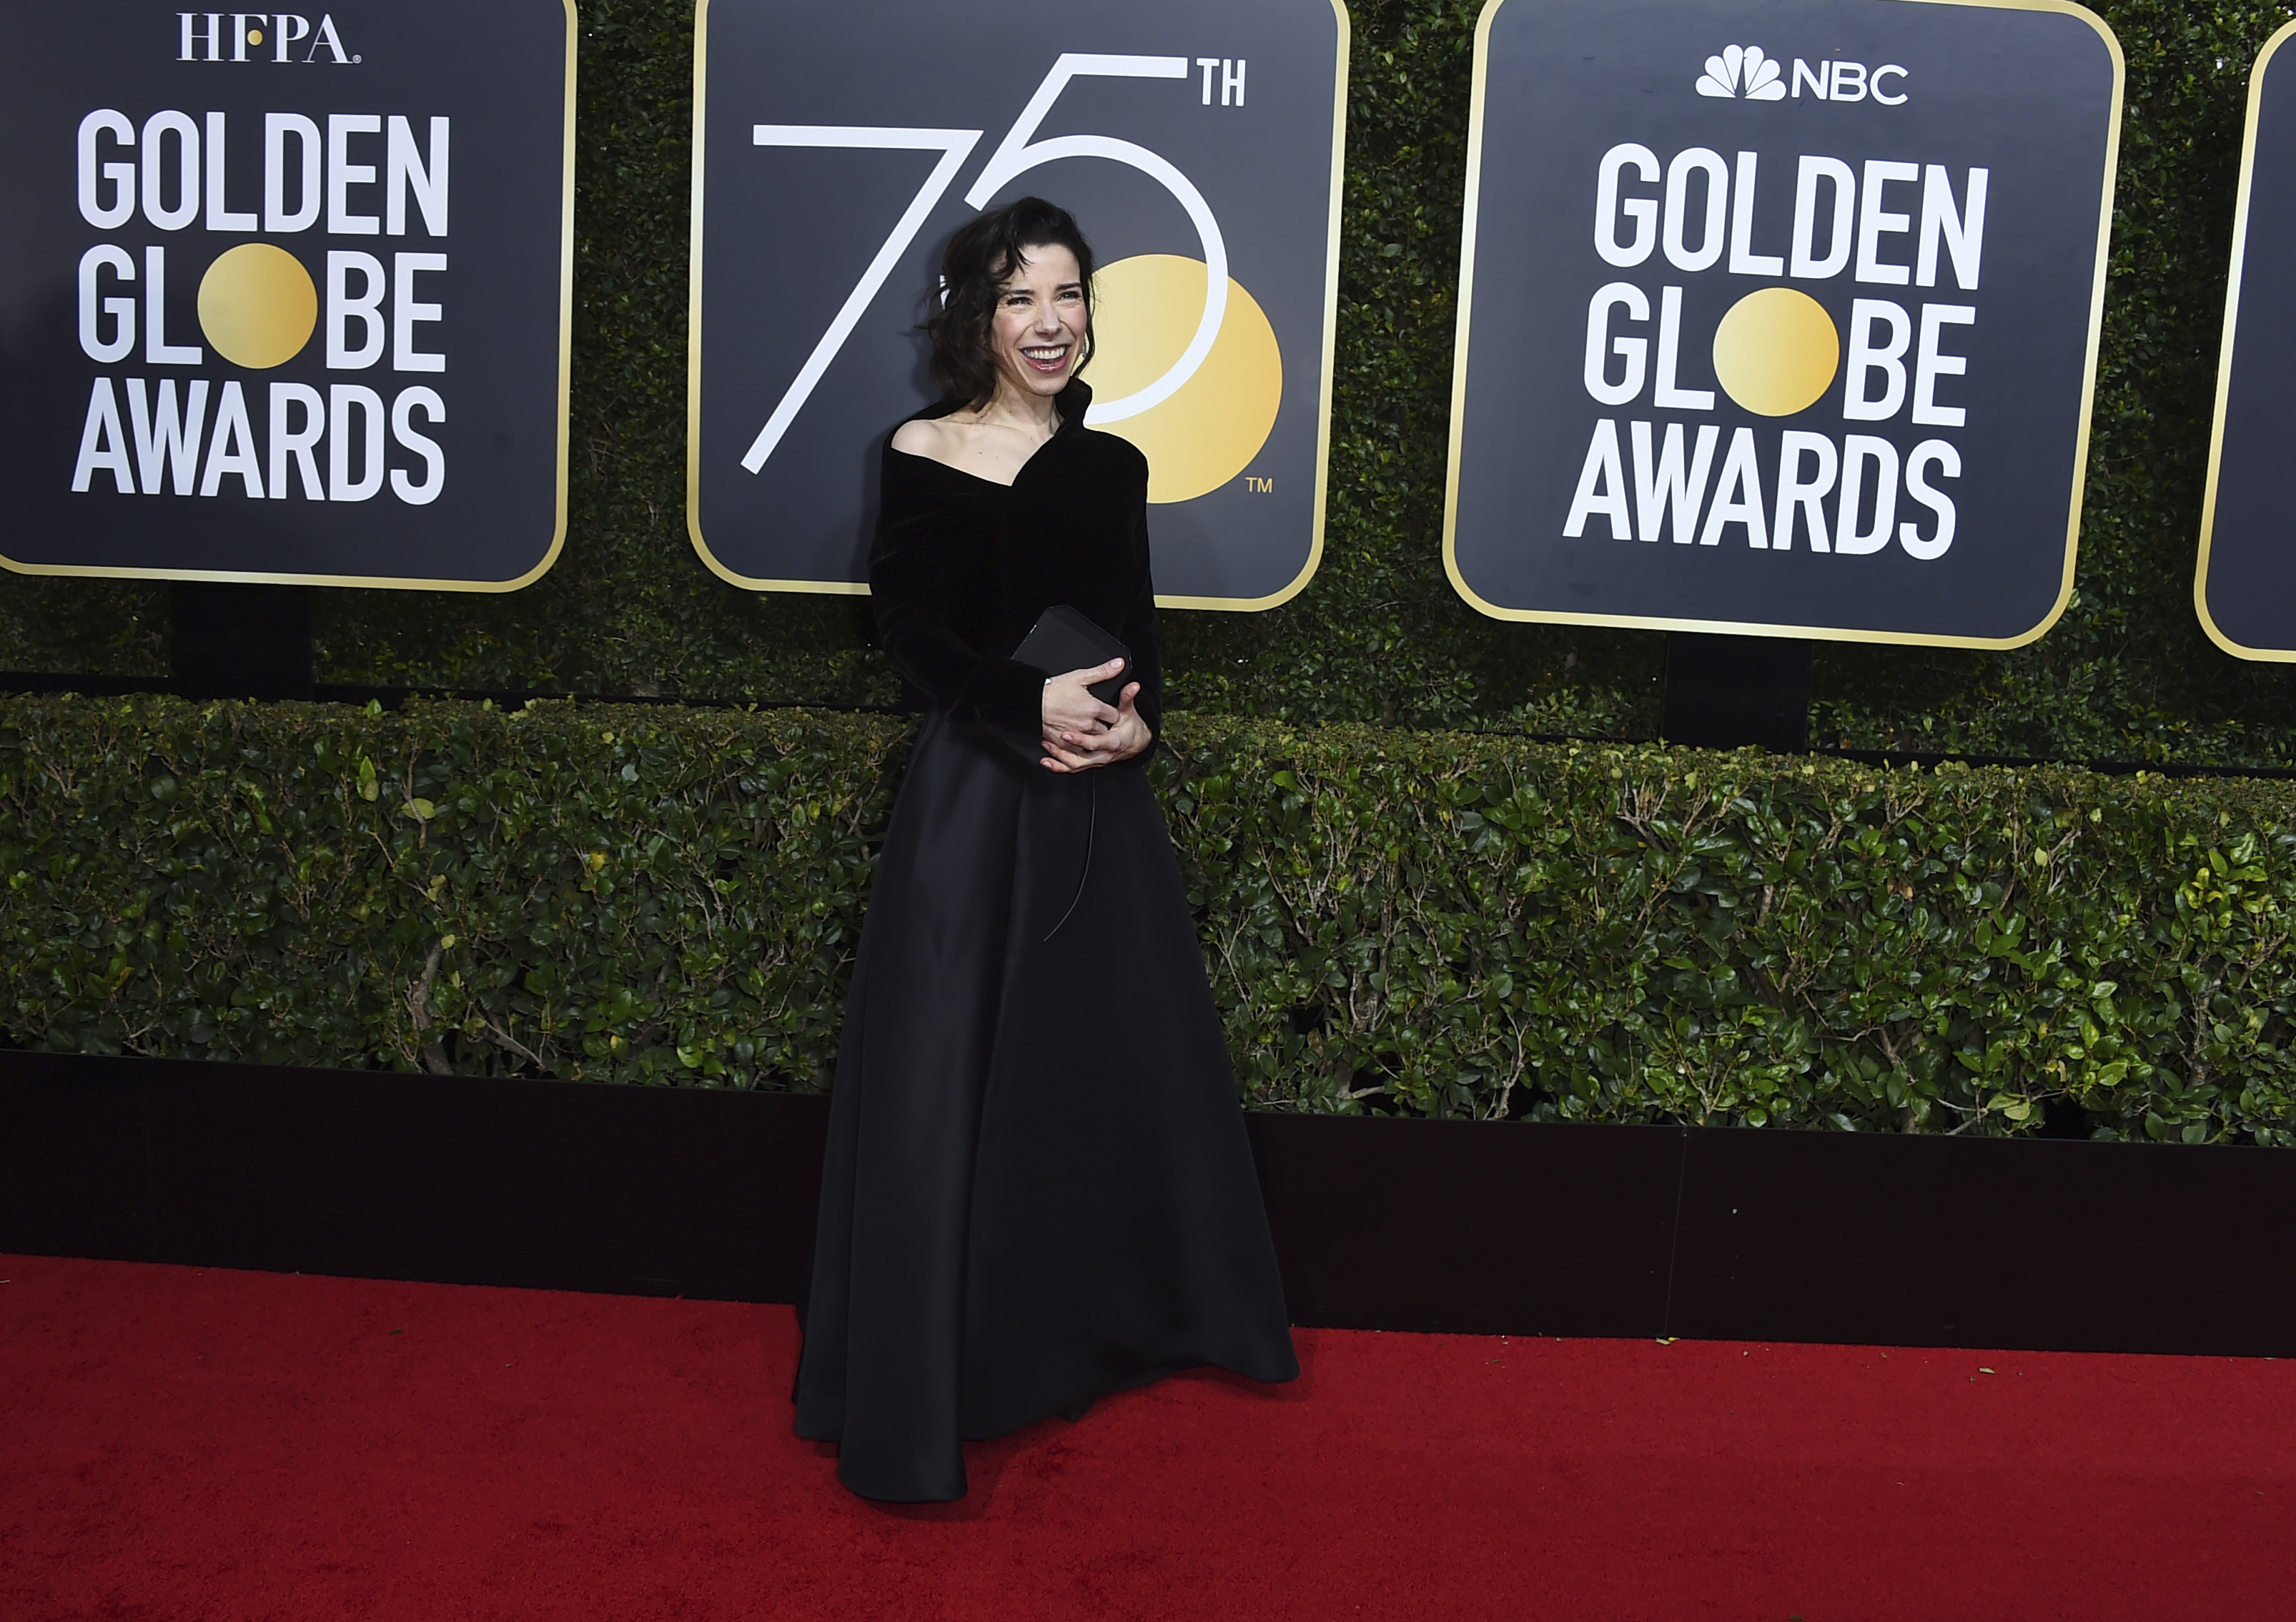 <div class='meta'><div class='origin-logo' data-origin='AP'></div><span class='caption-text' data-credit='Jordan Strauss/Invision/AP'>Sally Hawkins arrives at the 75th annual Golden Globe Awards at the Beverly Hilton Hotel on Sunday, Jan. 7, 2018, in Beverly Hills, Calif.</span></div>